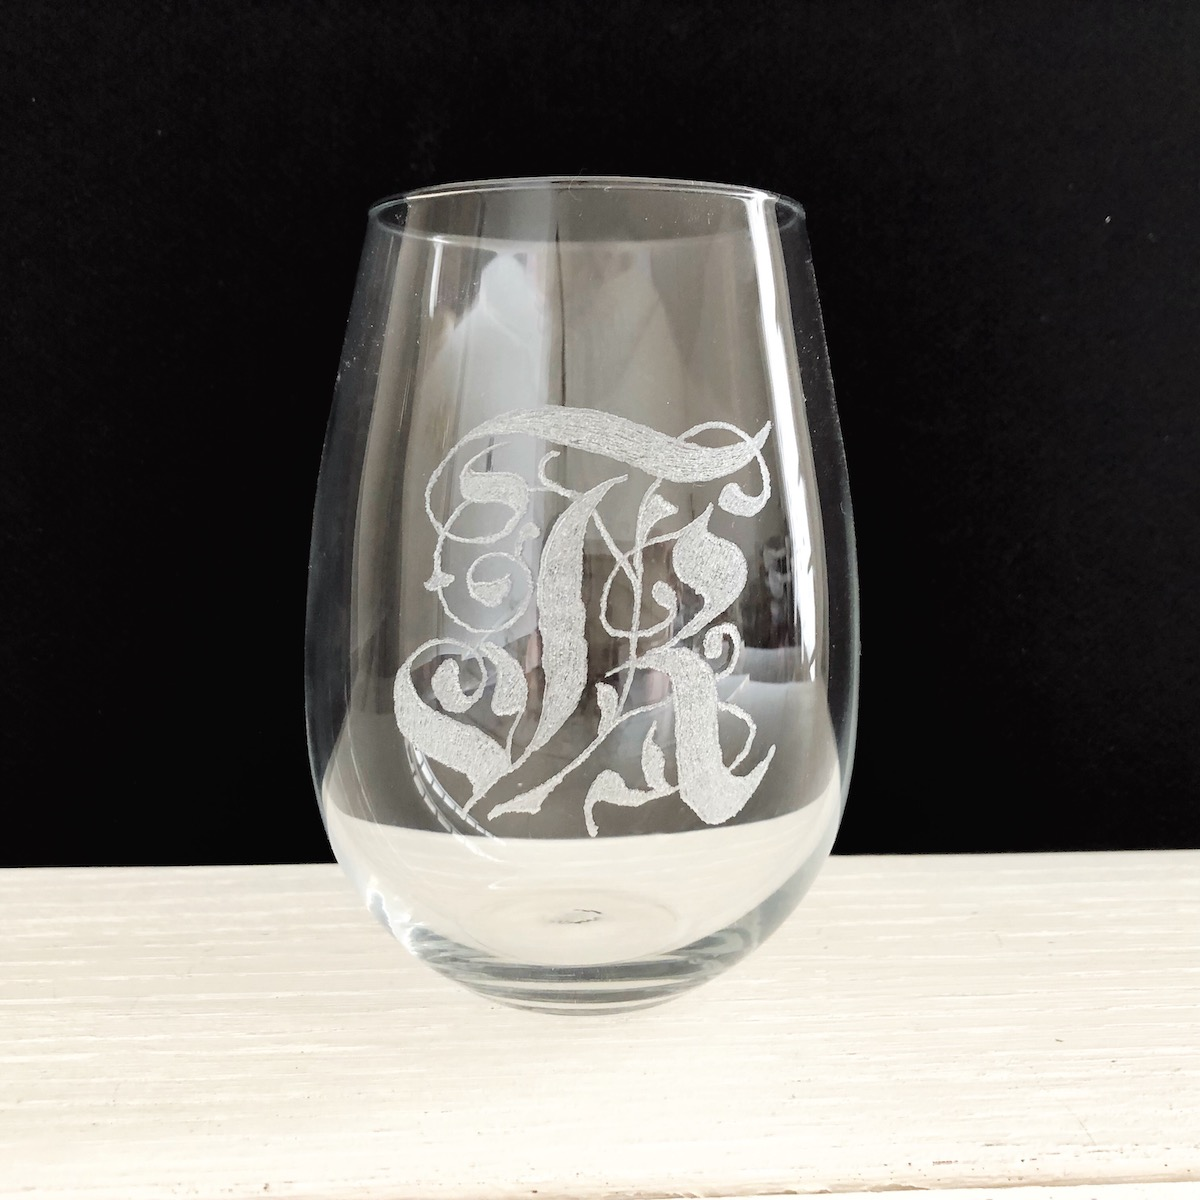 Engraving K on glass